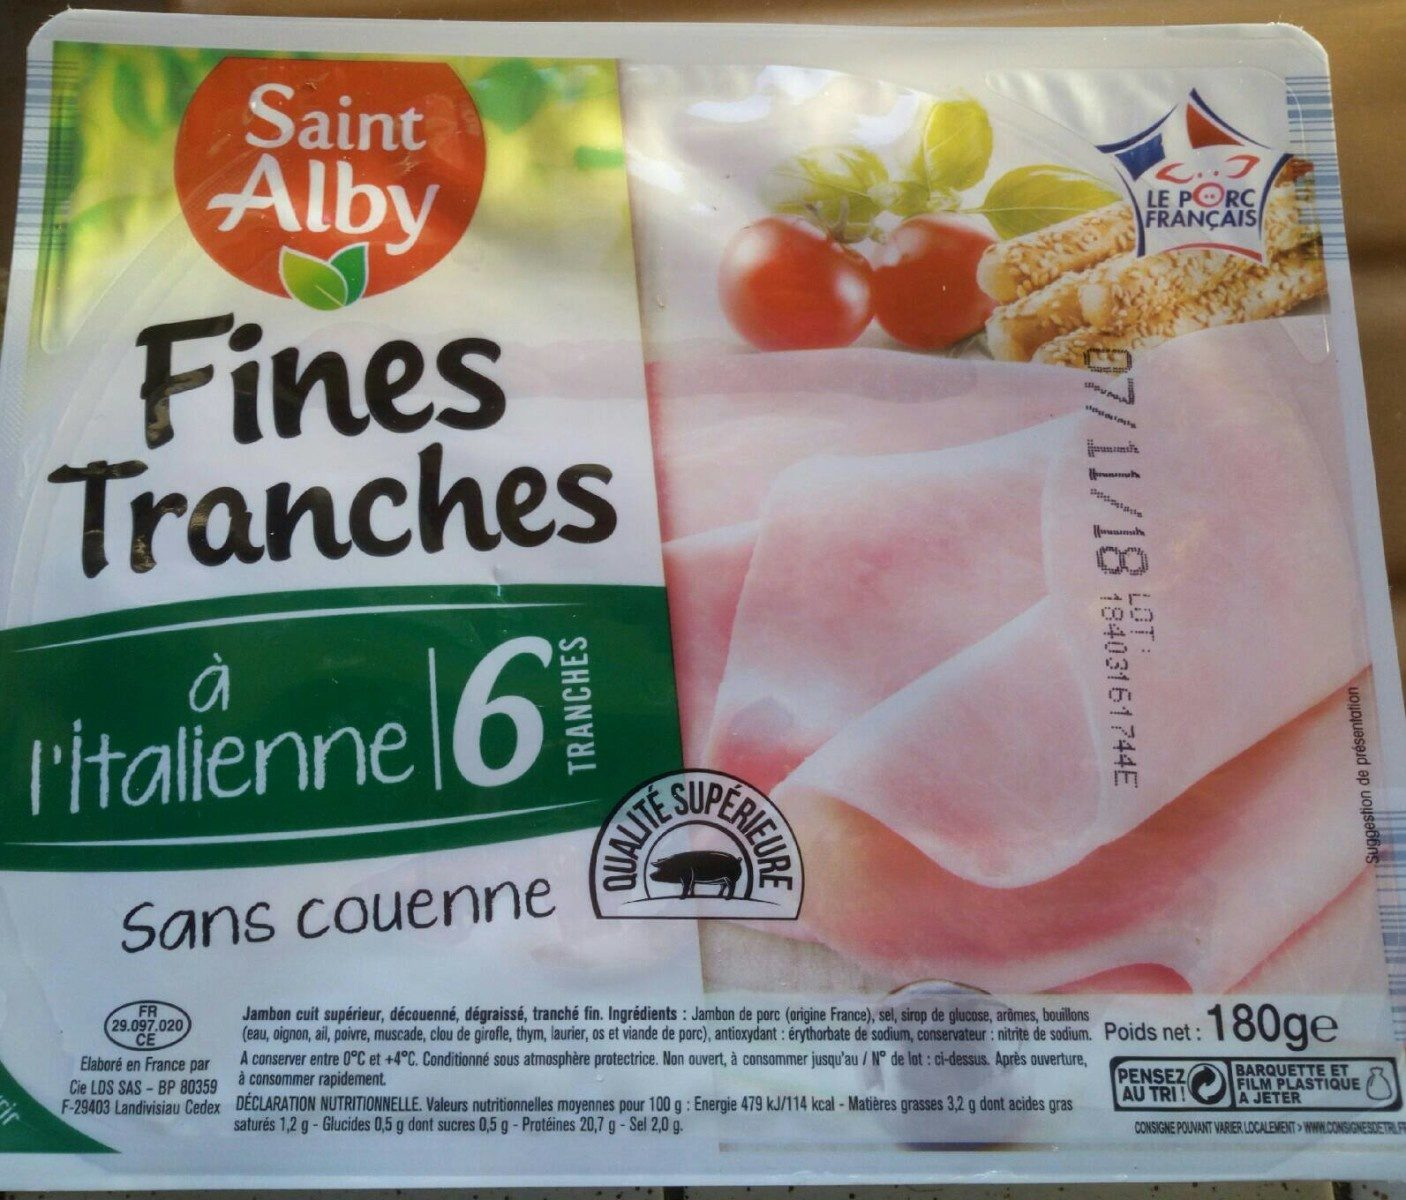 Fines tranches à l'italienne - Product